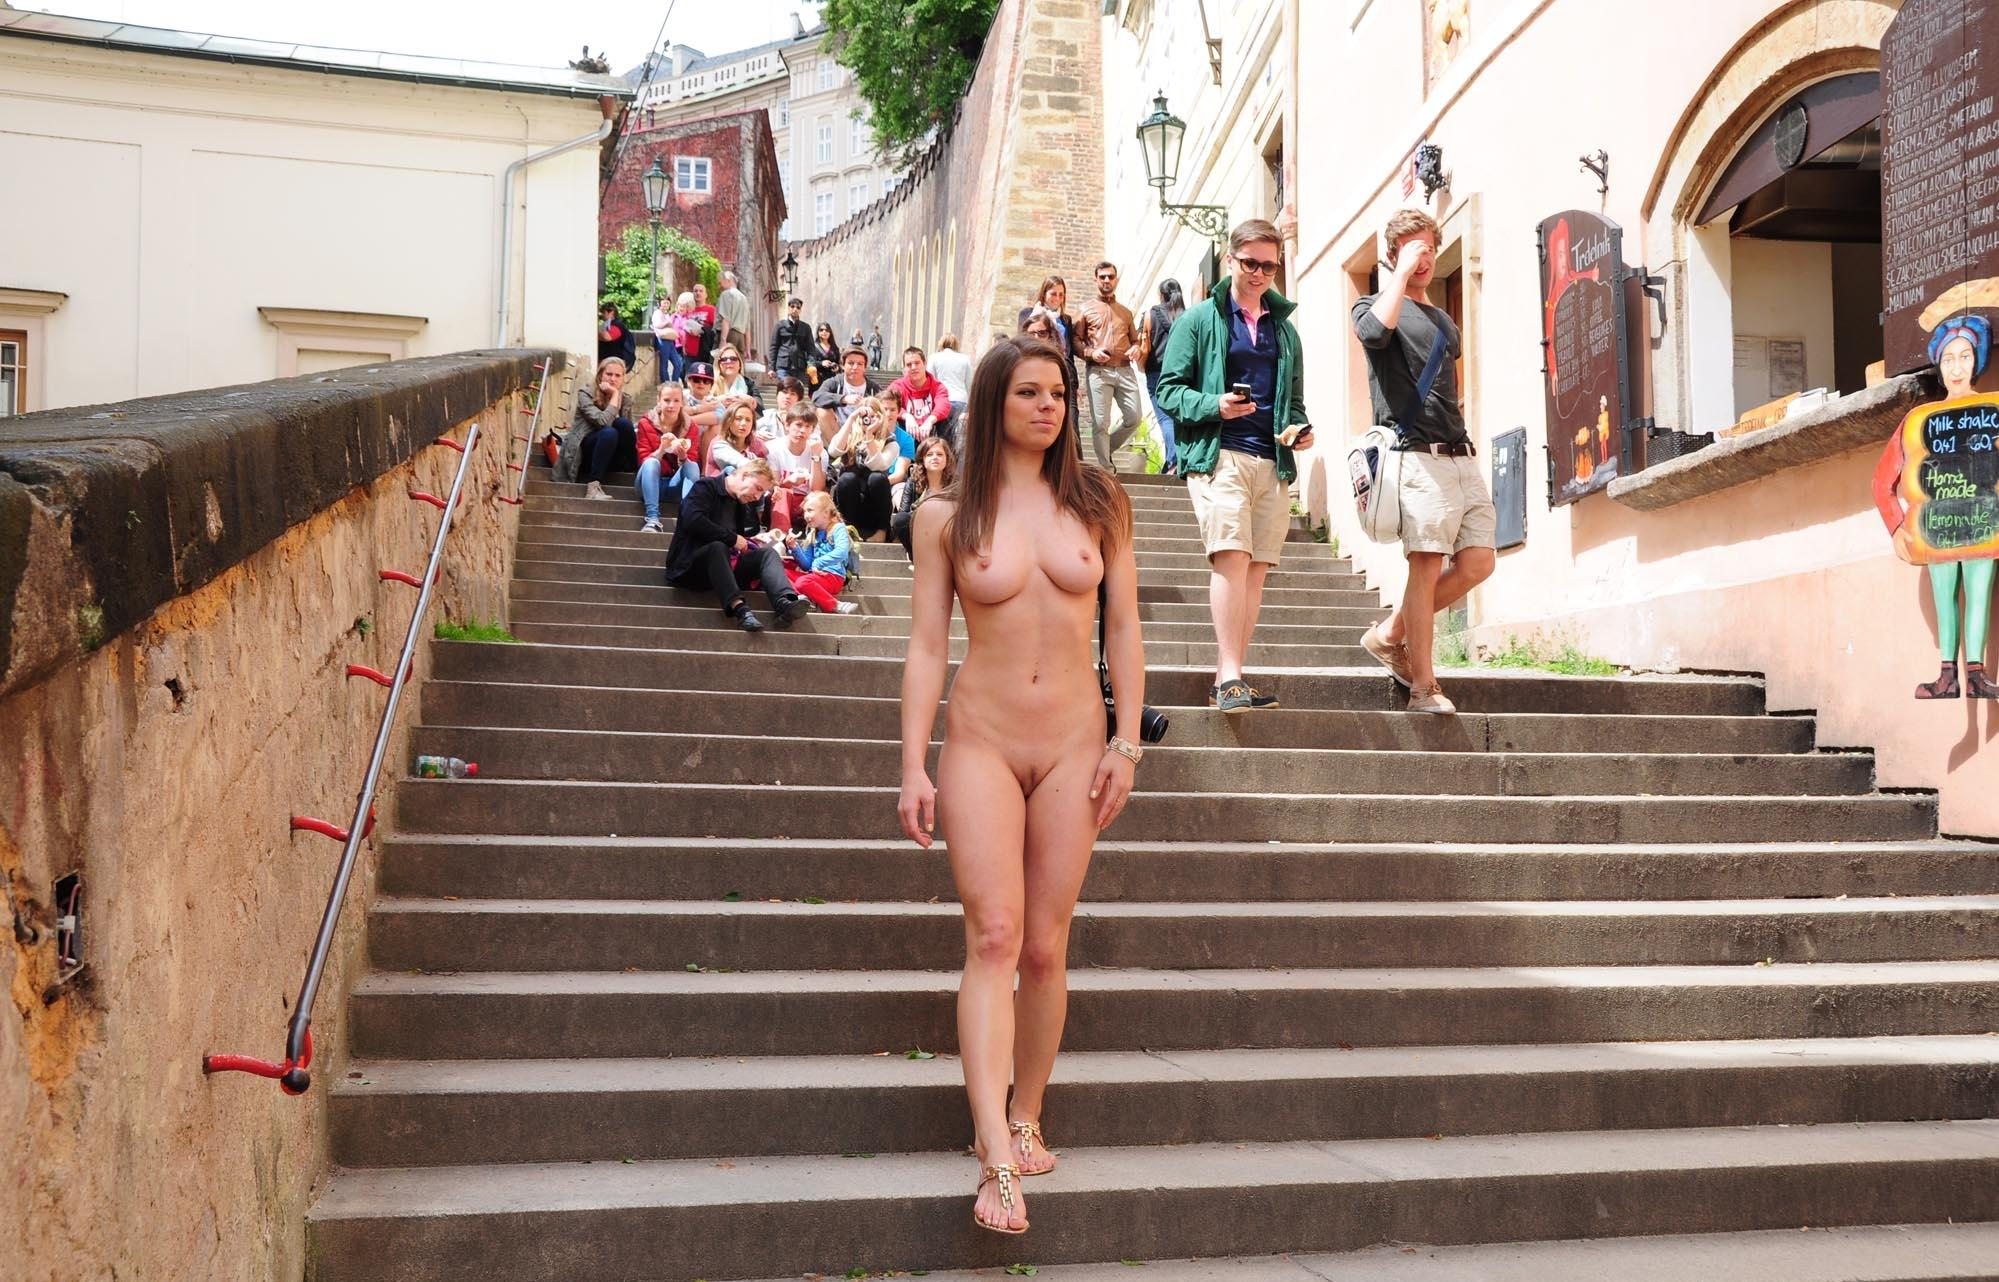 naked-girls-in-public-mix-vol5-17